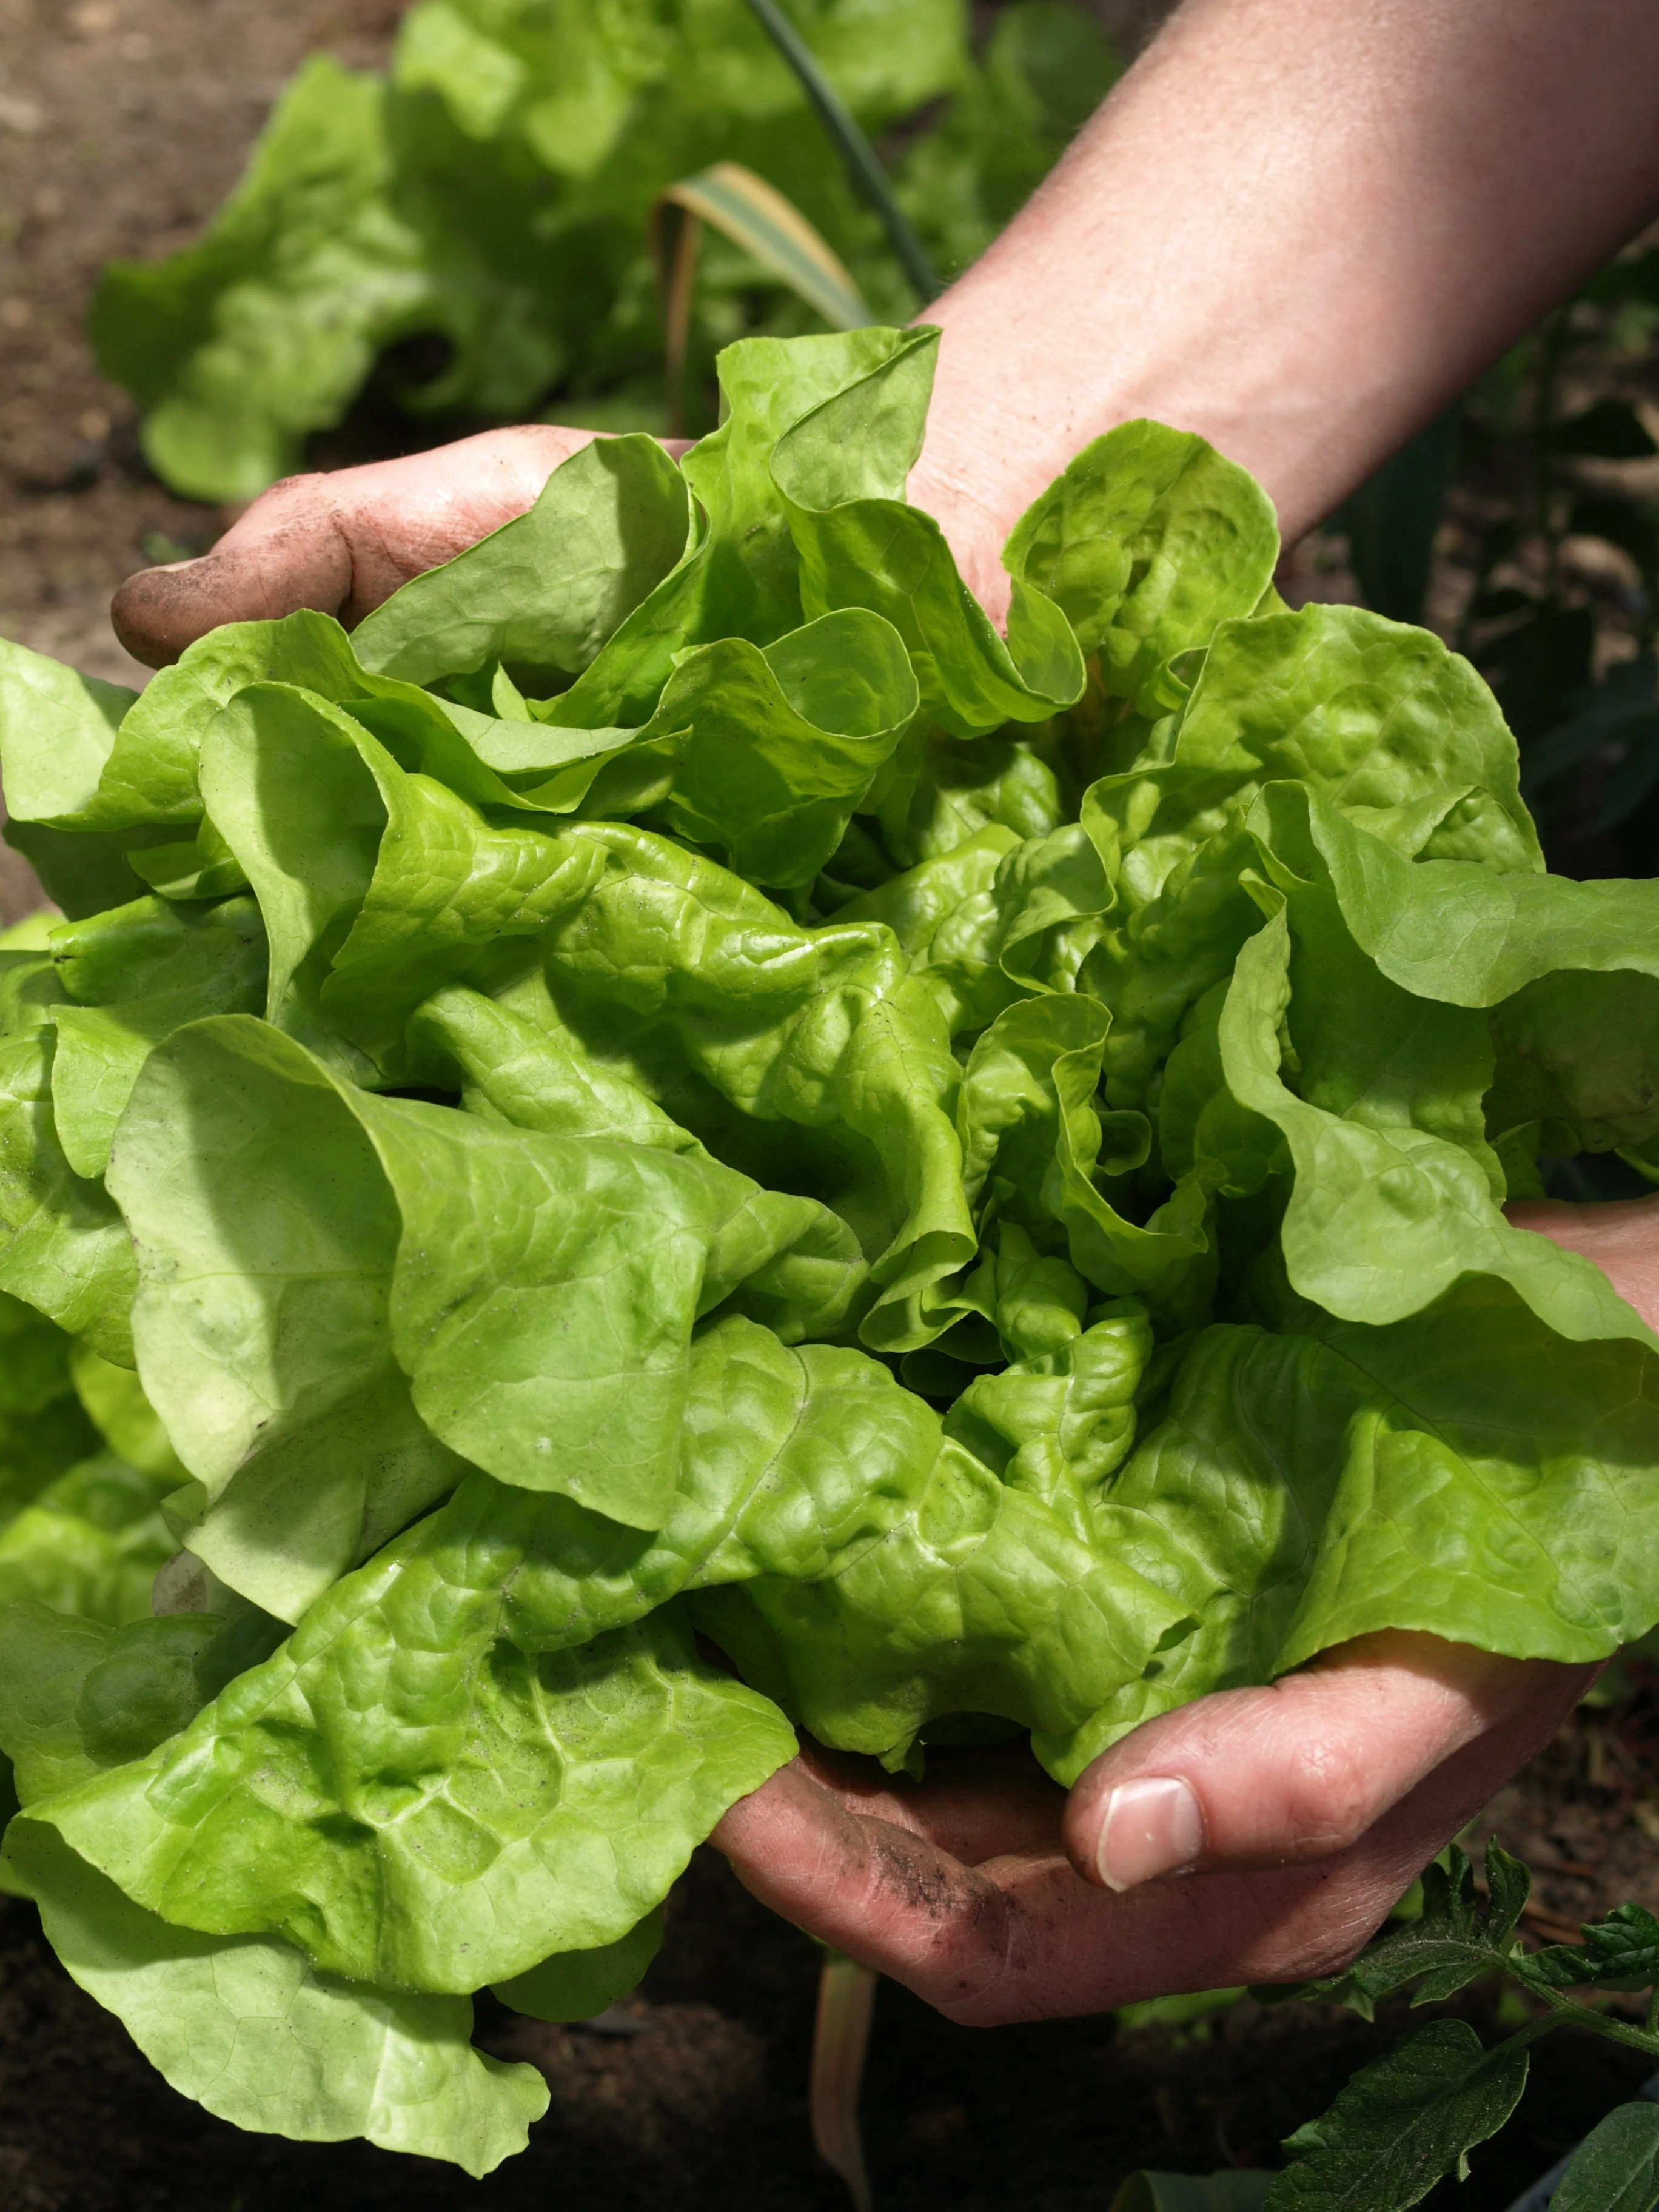 30 Second Guide to Growing Lettuce